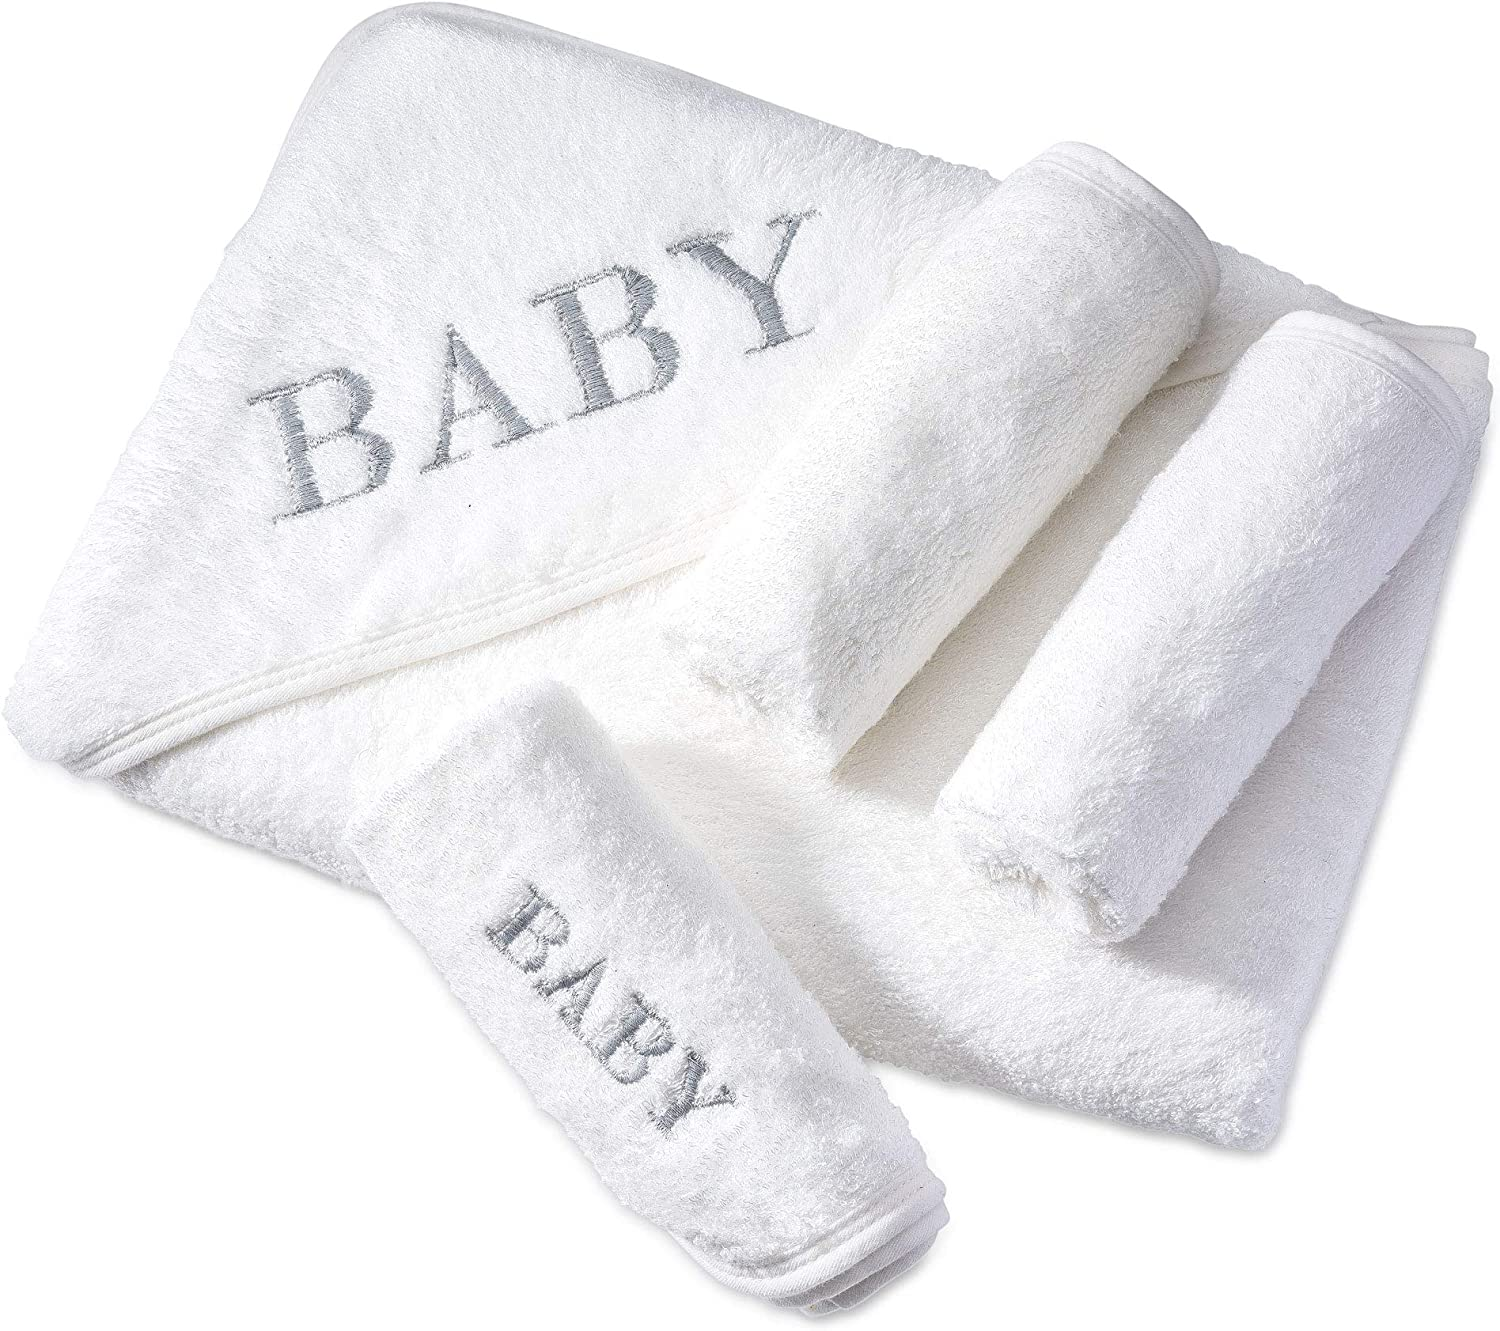 Max 45% OFF Large Baby Hooded Towels with Ranking TOP3 3 Included Washcloths So Super Big